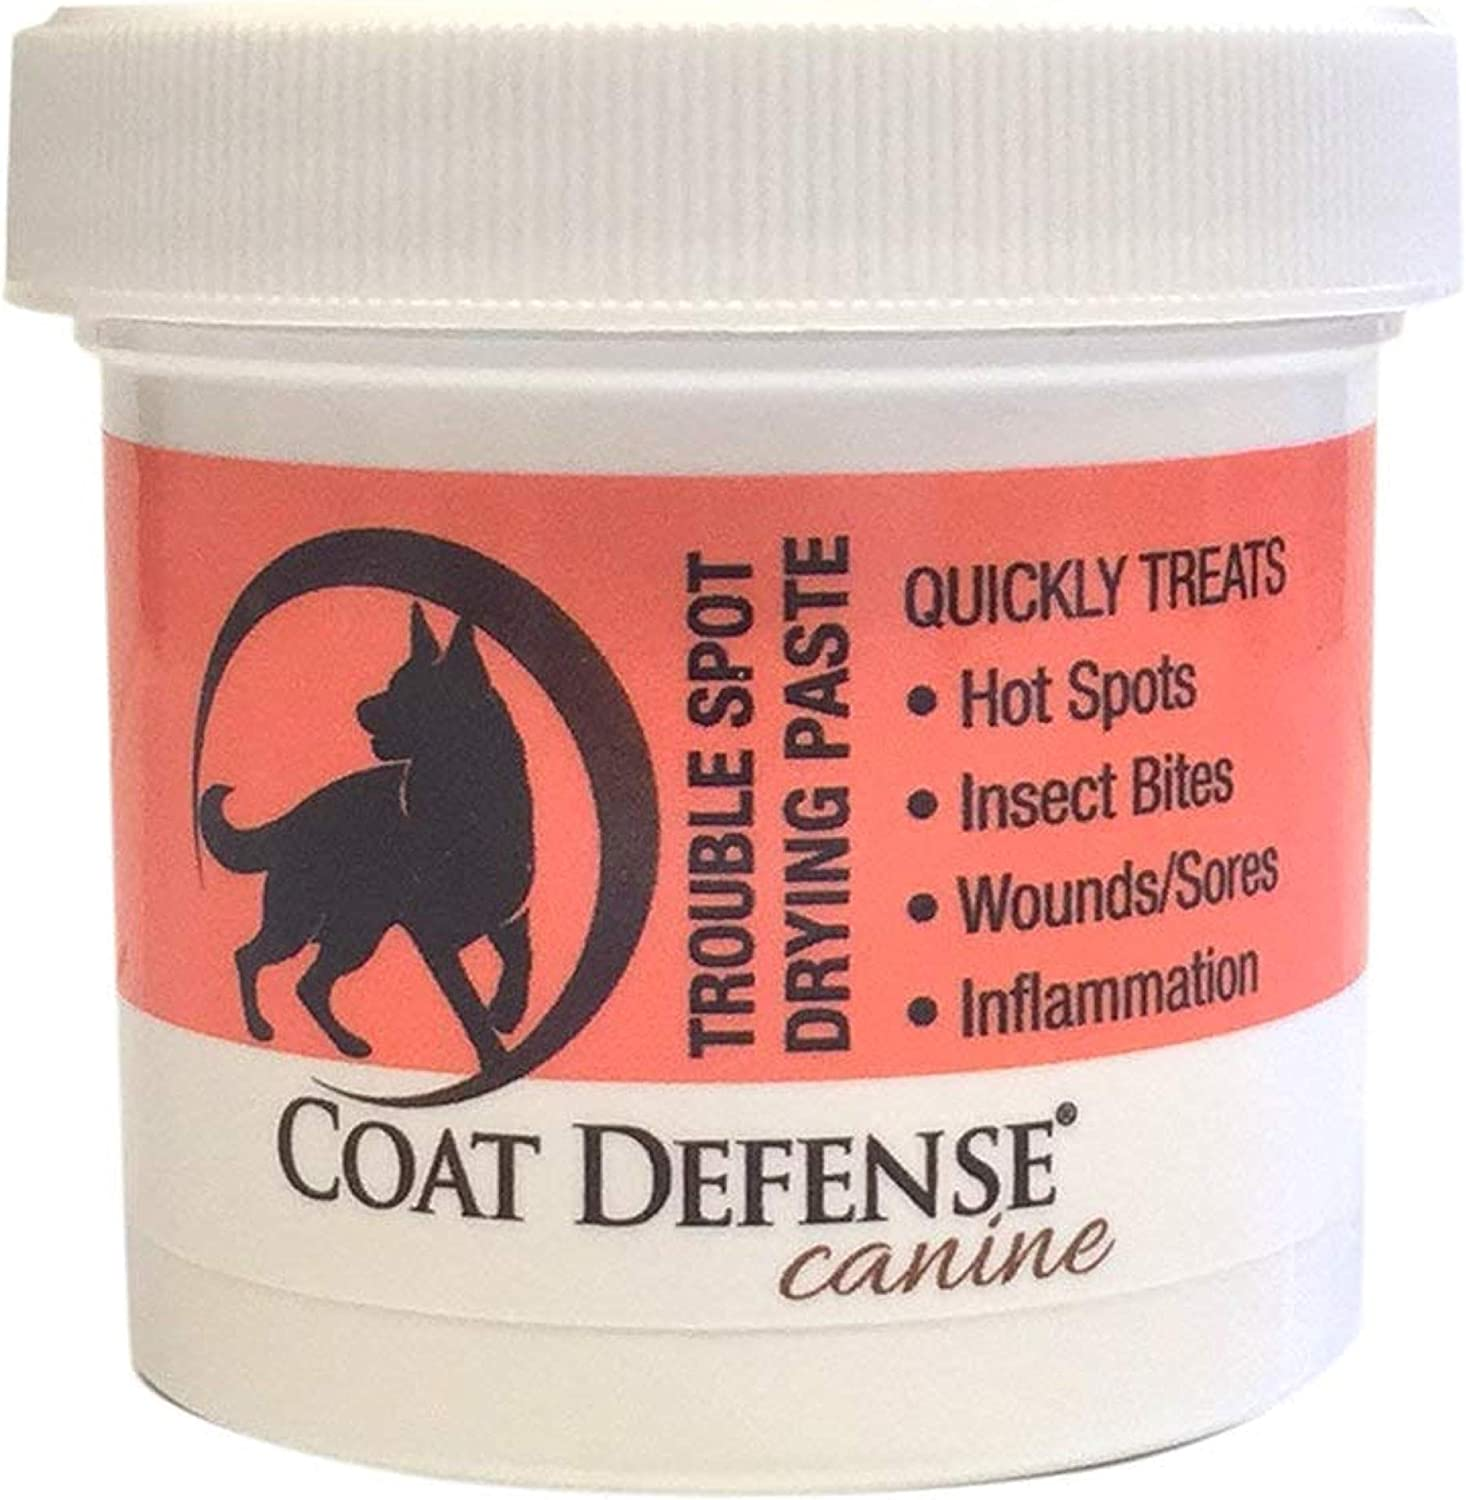 Coat Defense Trouble Spot Drying Paste   Anti Fungal Anti Bacterial Dog Skin Treatment For Hot Spots, Itchy Skin, Skin Allergies, Dermatitis Inflammation, Insect Bites, Wounds And Sores   Made In USA